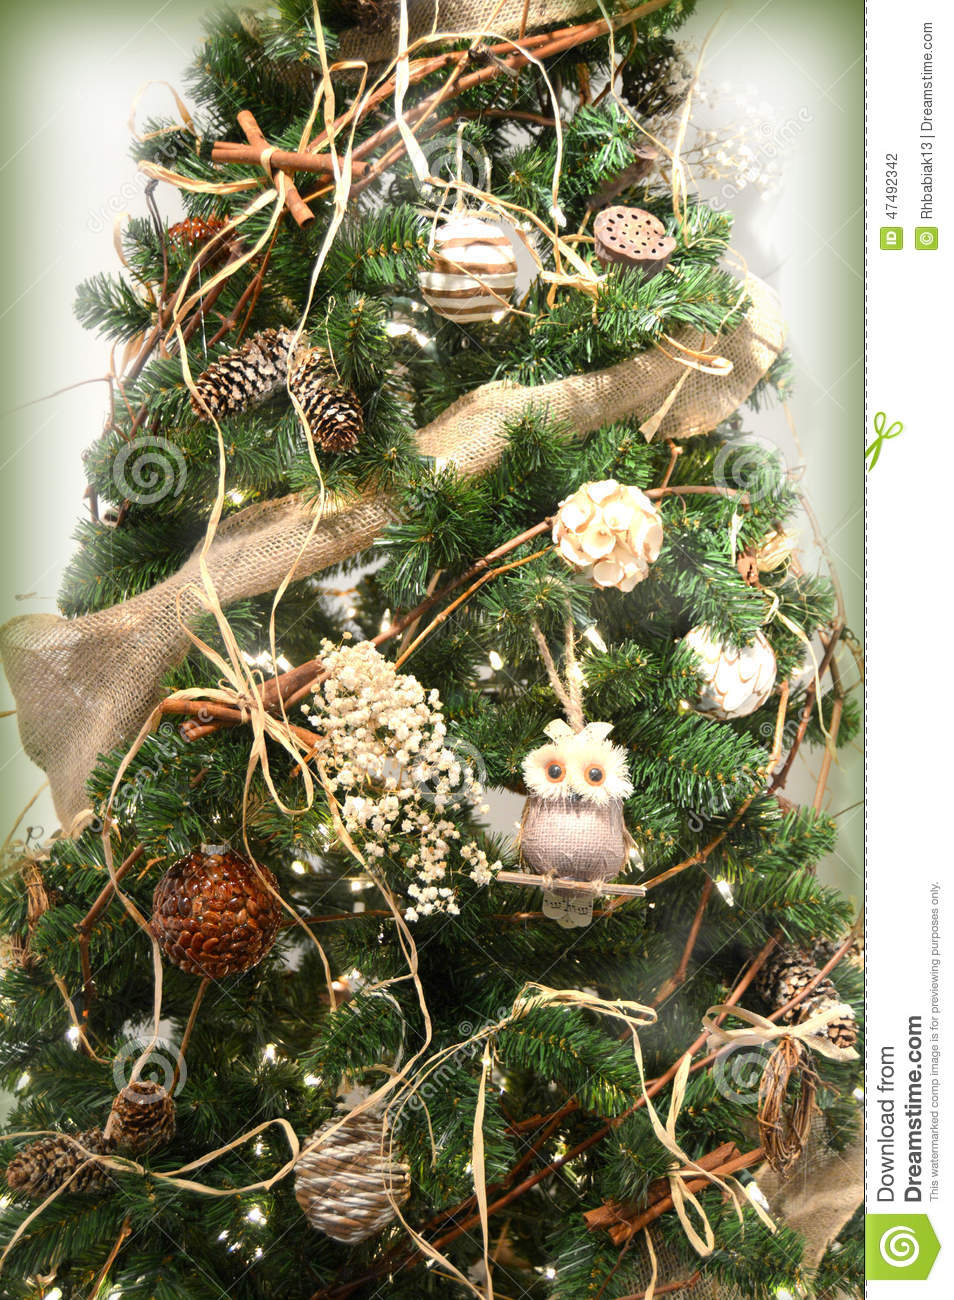 Guirnaldas Blancas Rustic Christmas Tree Stock Photo - Image: 47492342